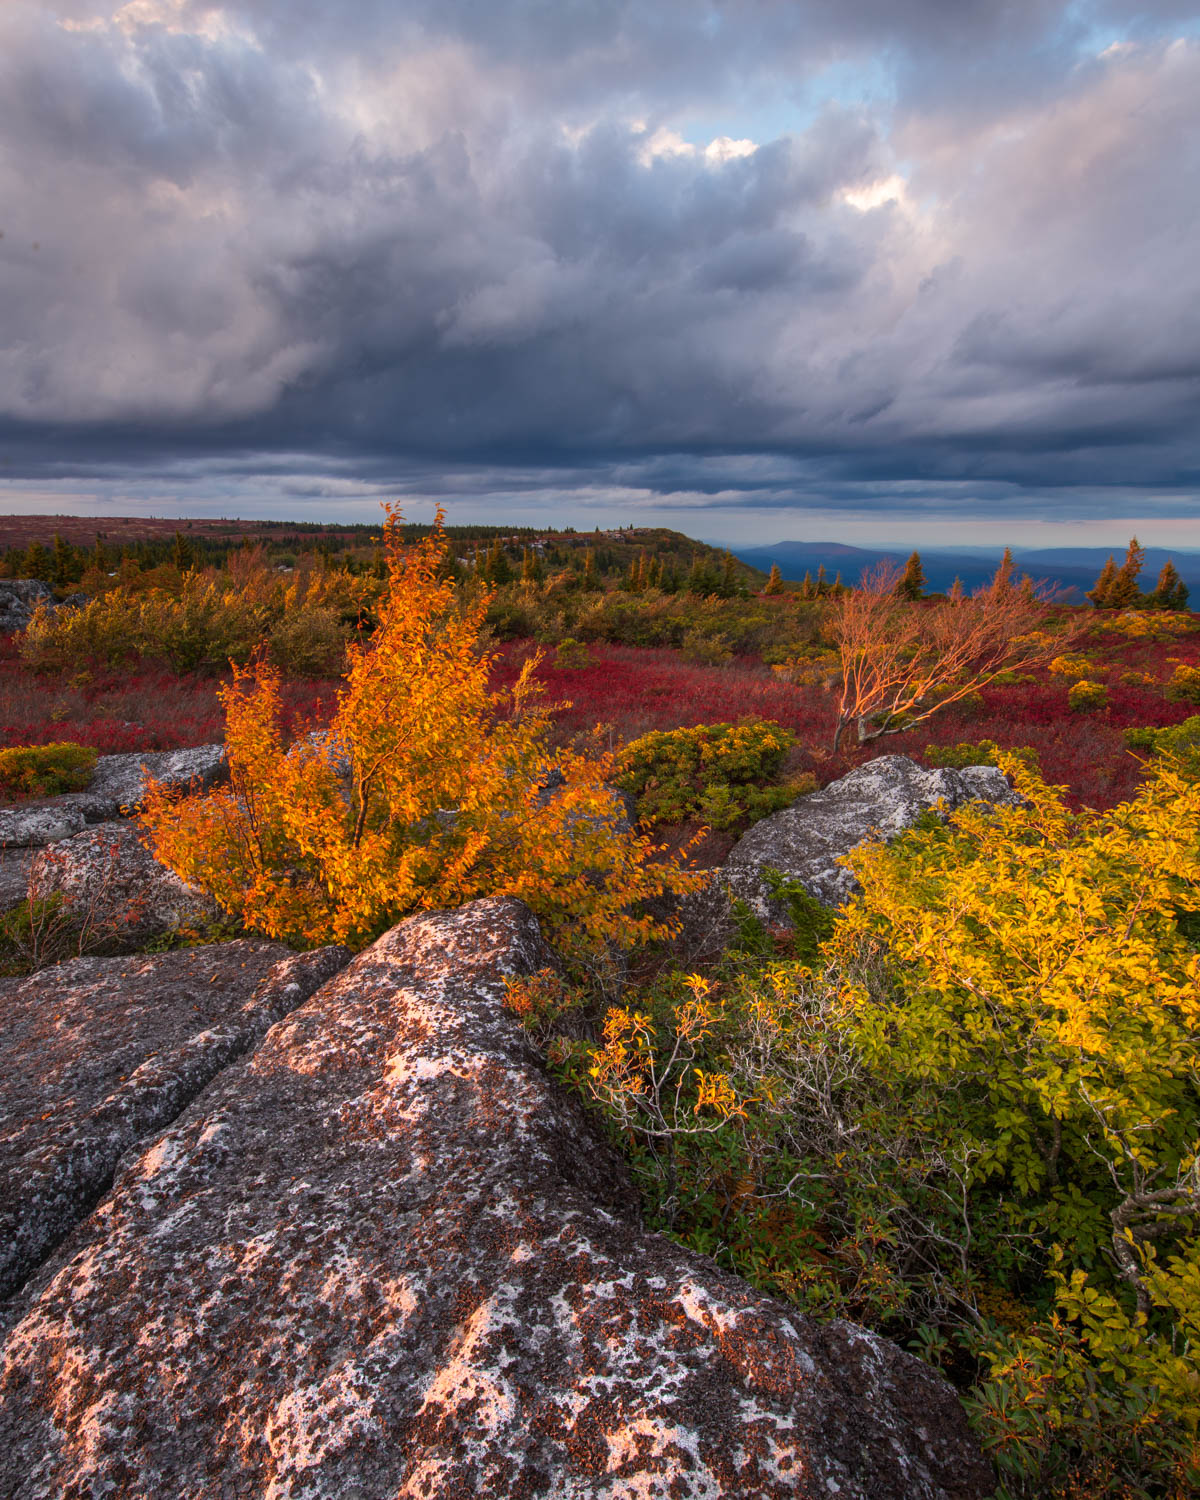 A dramatic sunset from the Dolly Sods Wilderness in West Virginia.